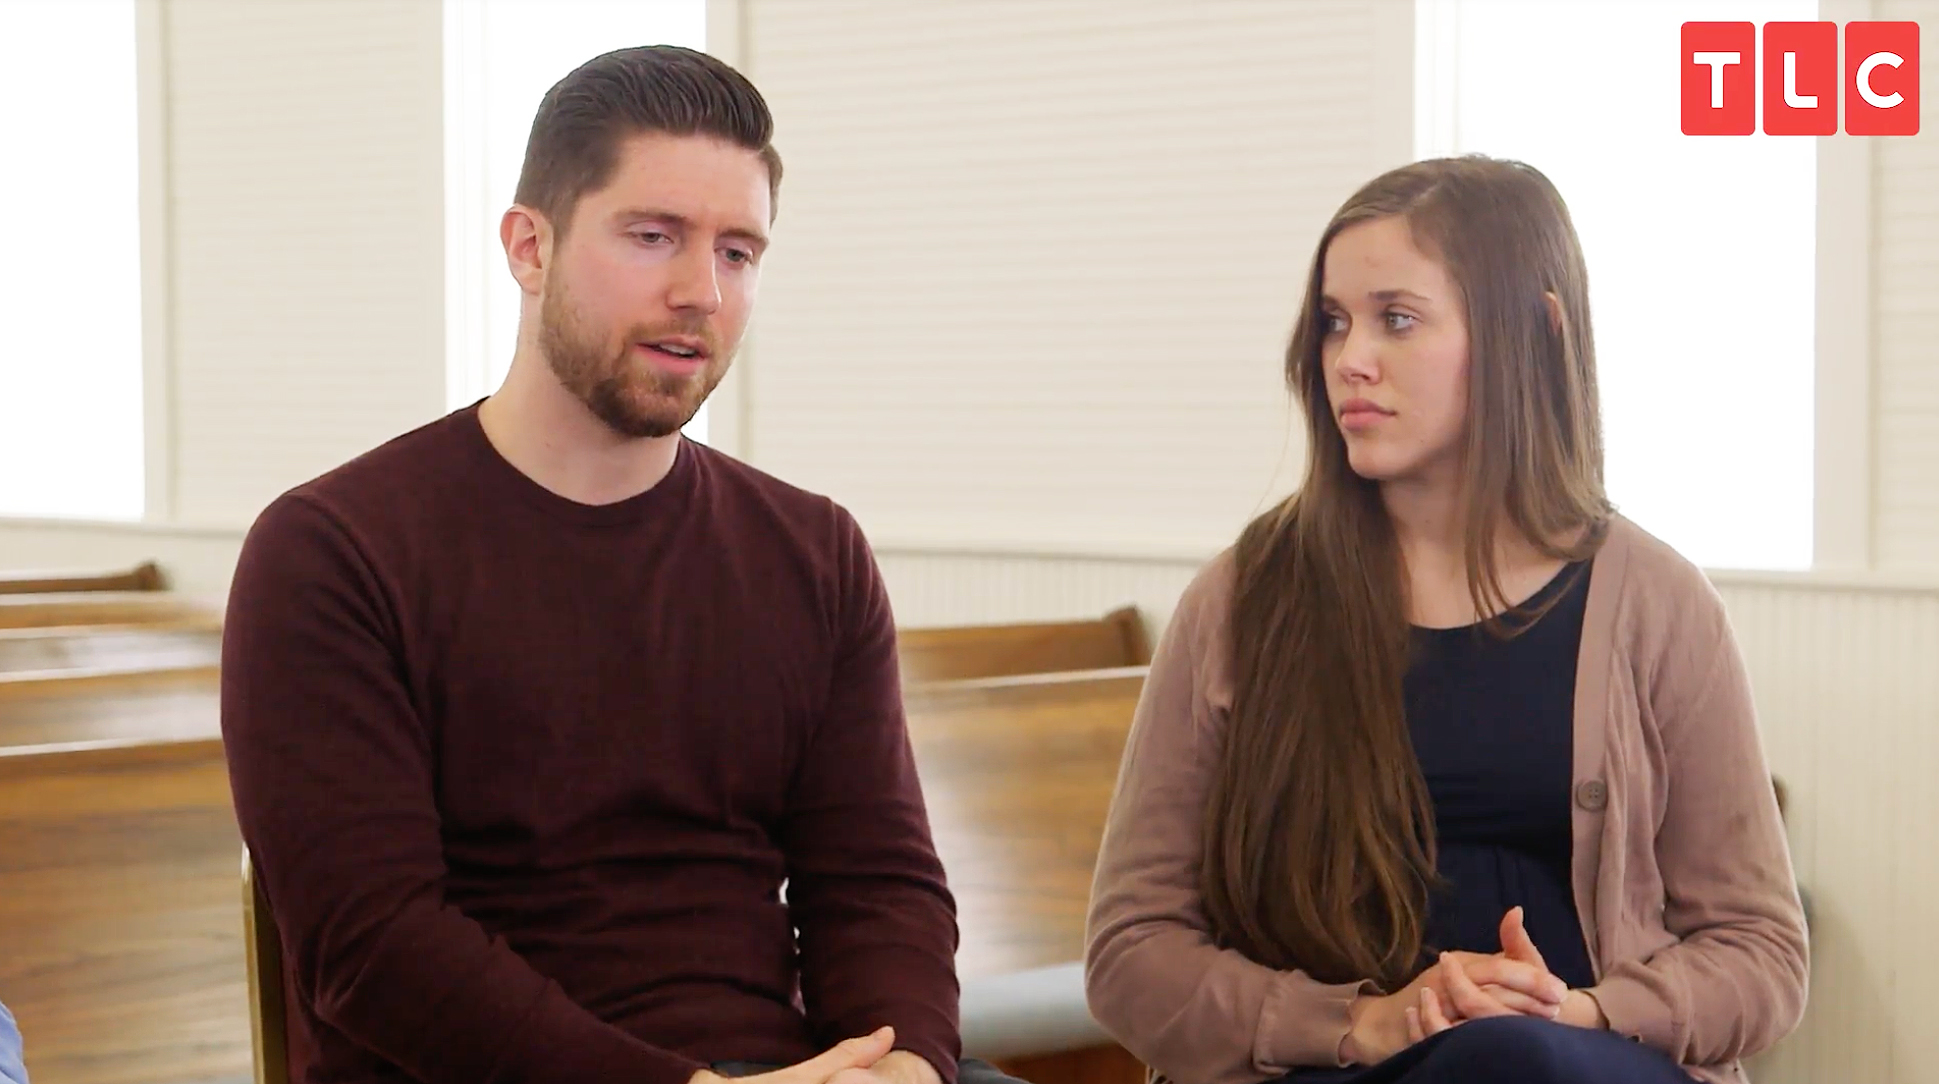 'Counting On' Sneak Peek: Jessa and Ben Detail How They Overcame Past Sins